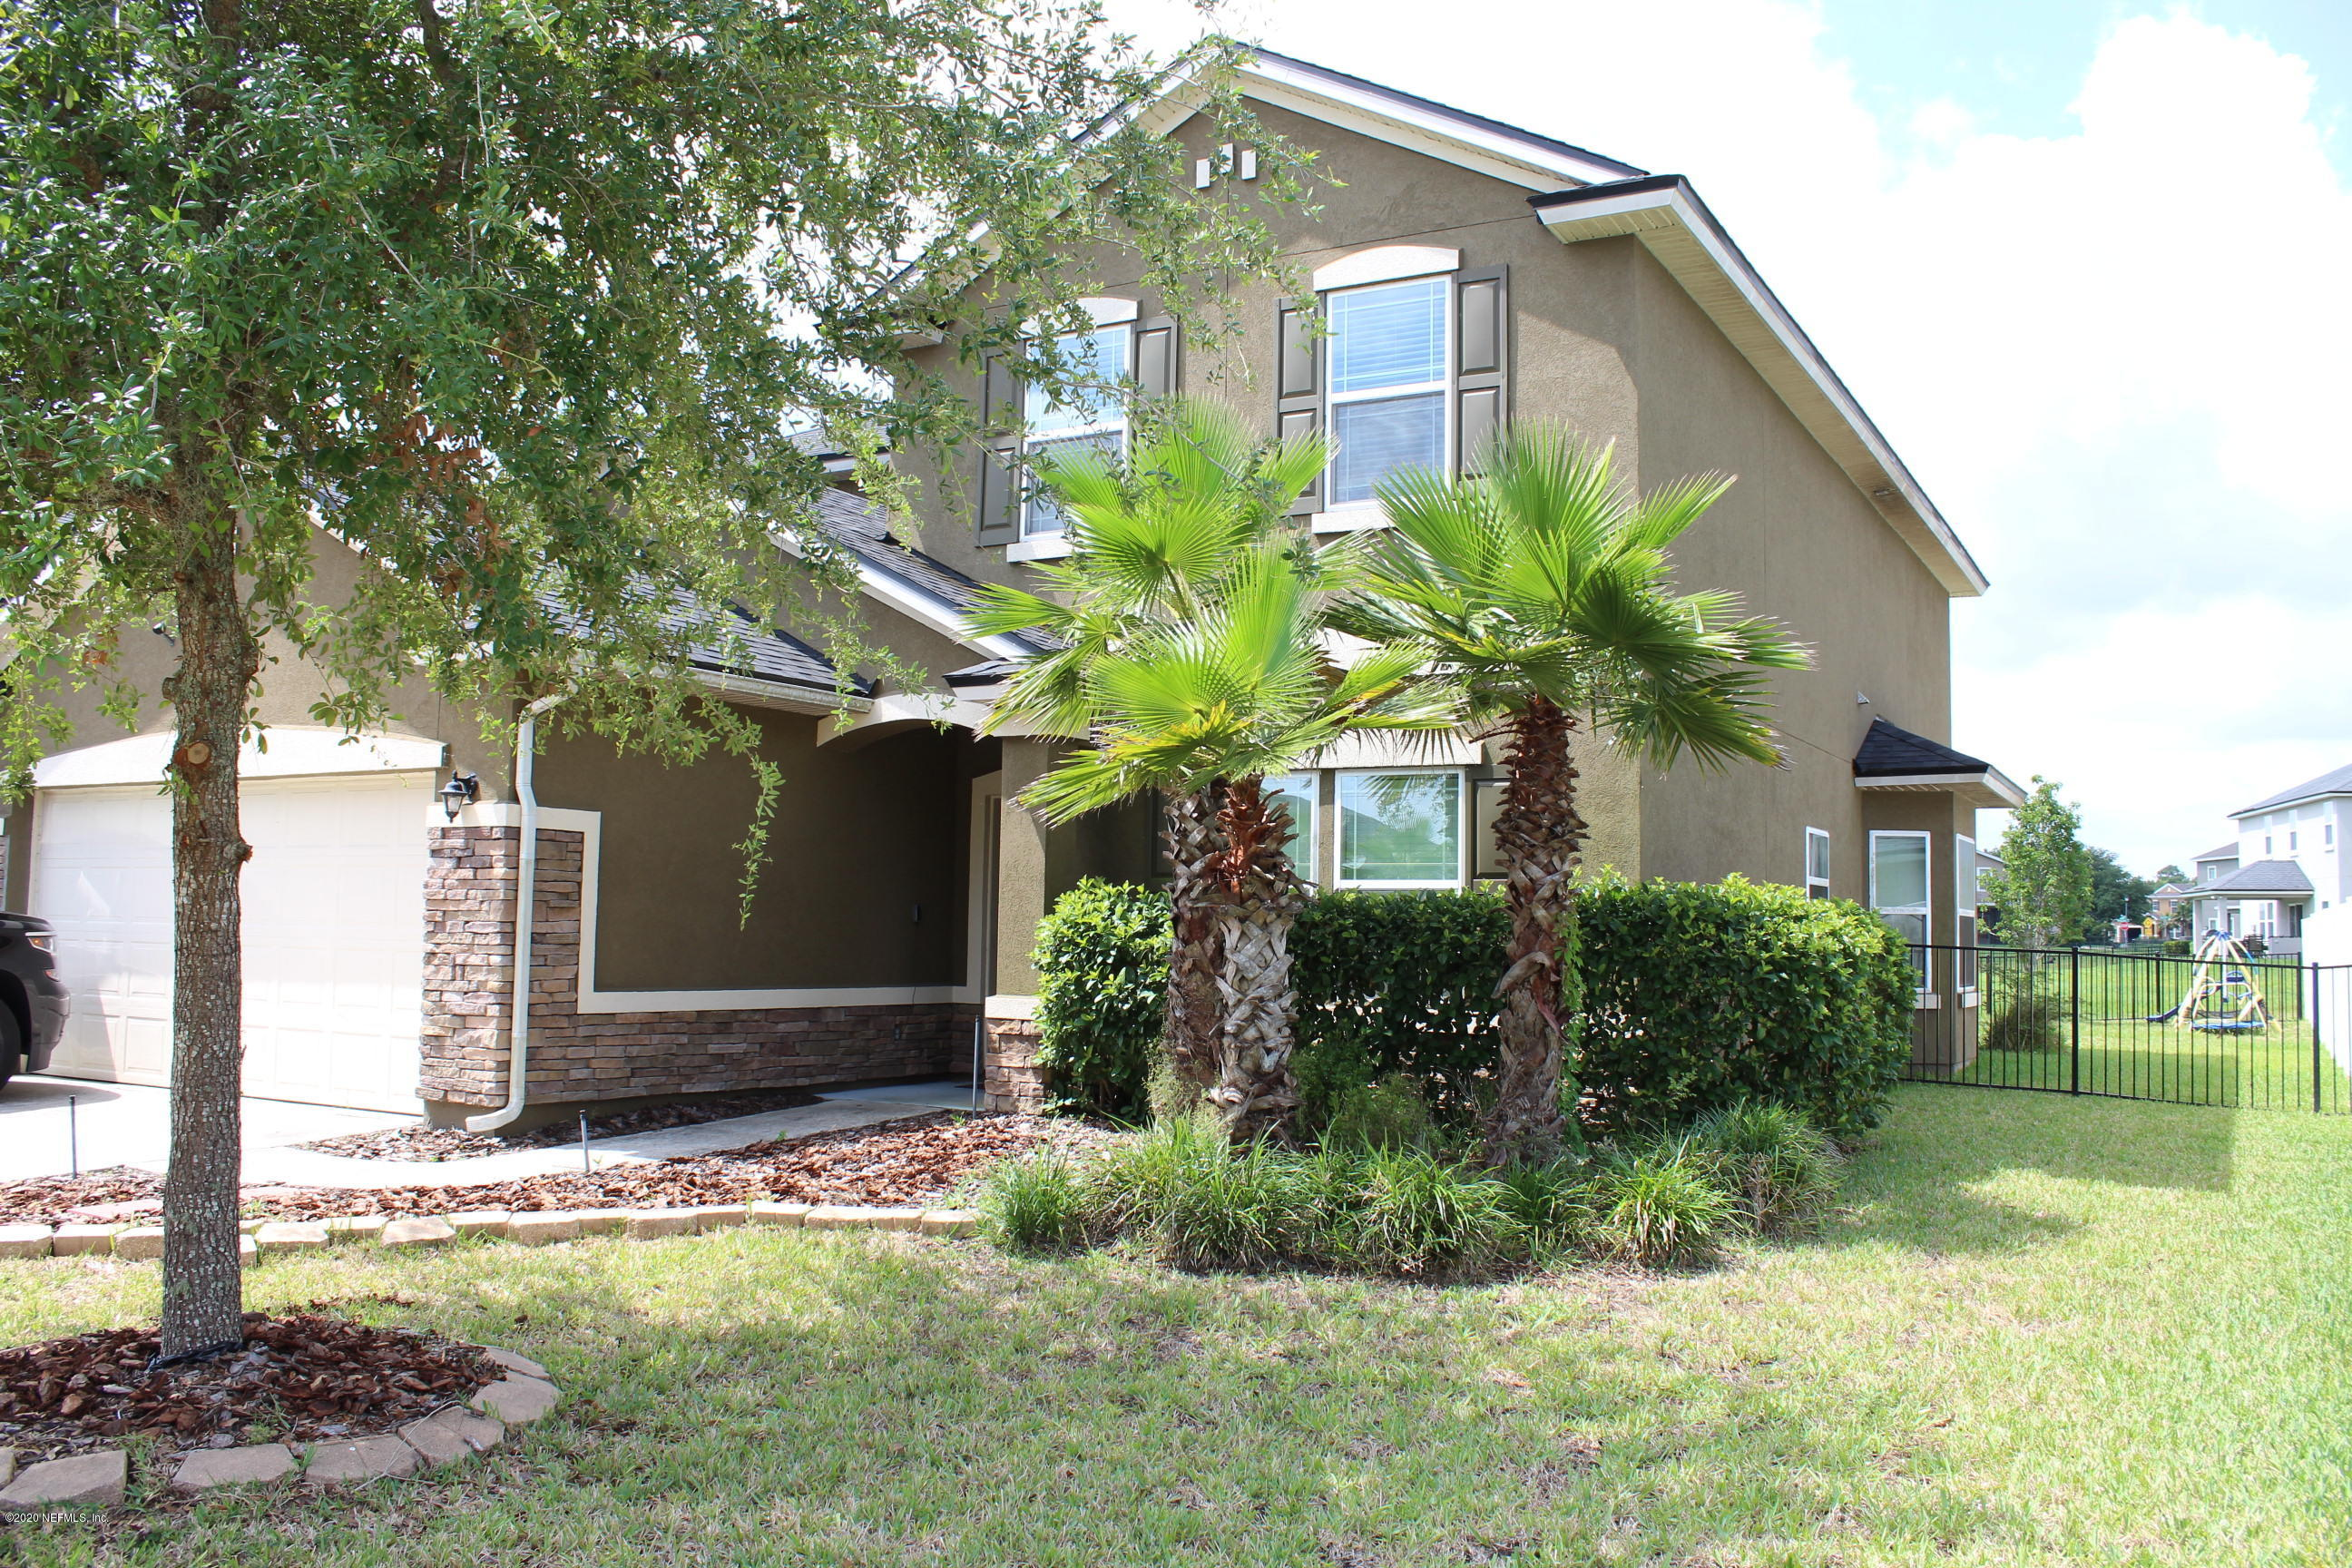 16392 MAGNOLIA GROVE, JACKSONVILLE, FLORIDA 32218, 4 Bedrooms Bedrooms, ,3 BathroomsBathrooms,Residential,For sale,MAGNOLIA GROVE,1056121